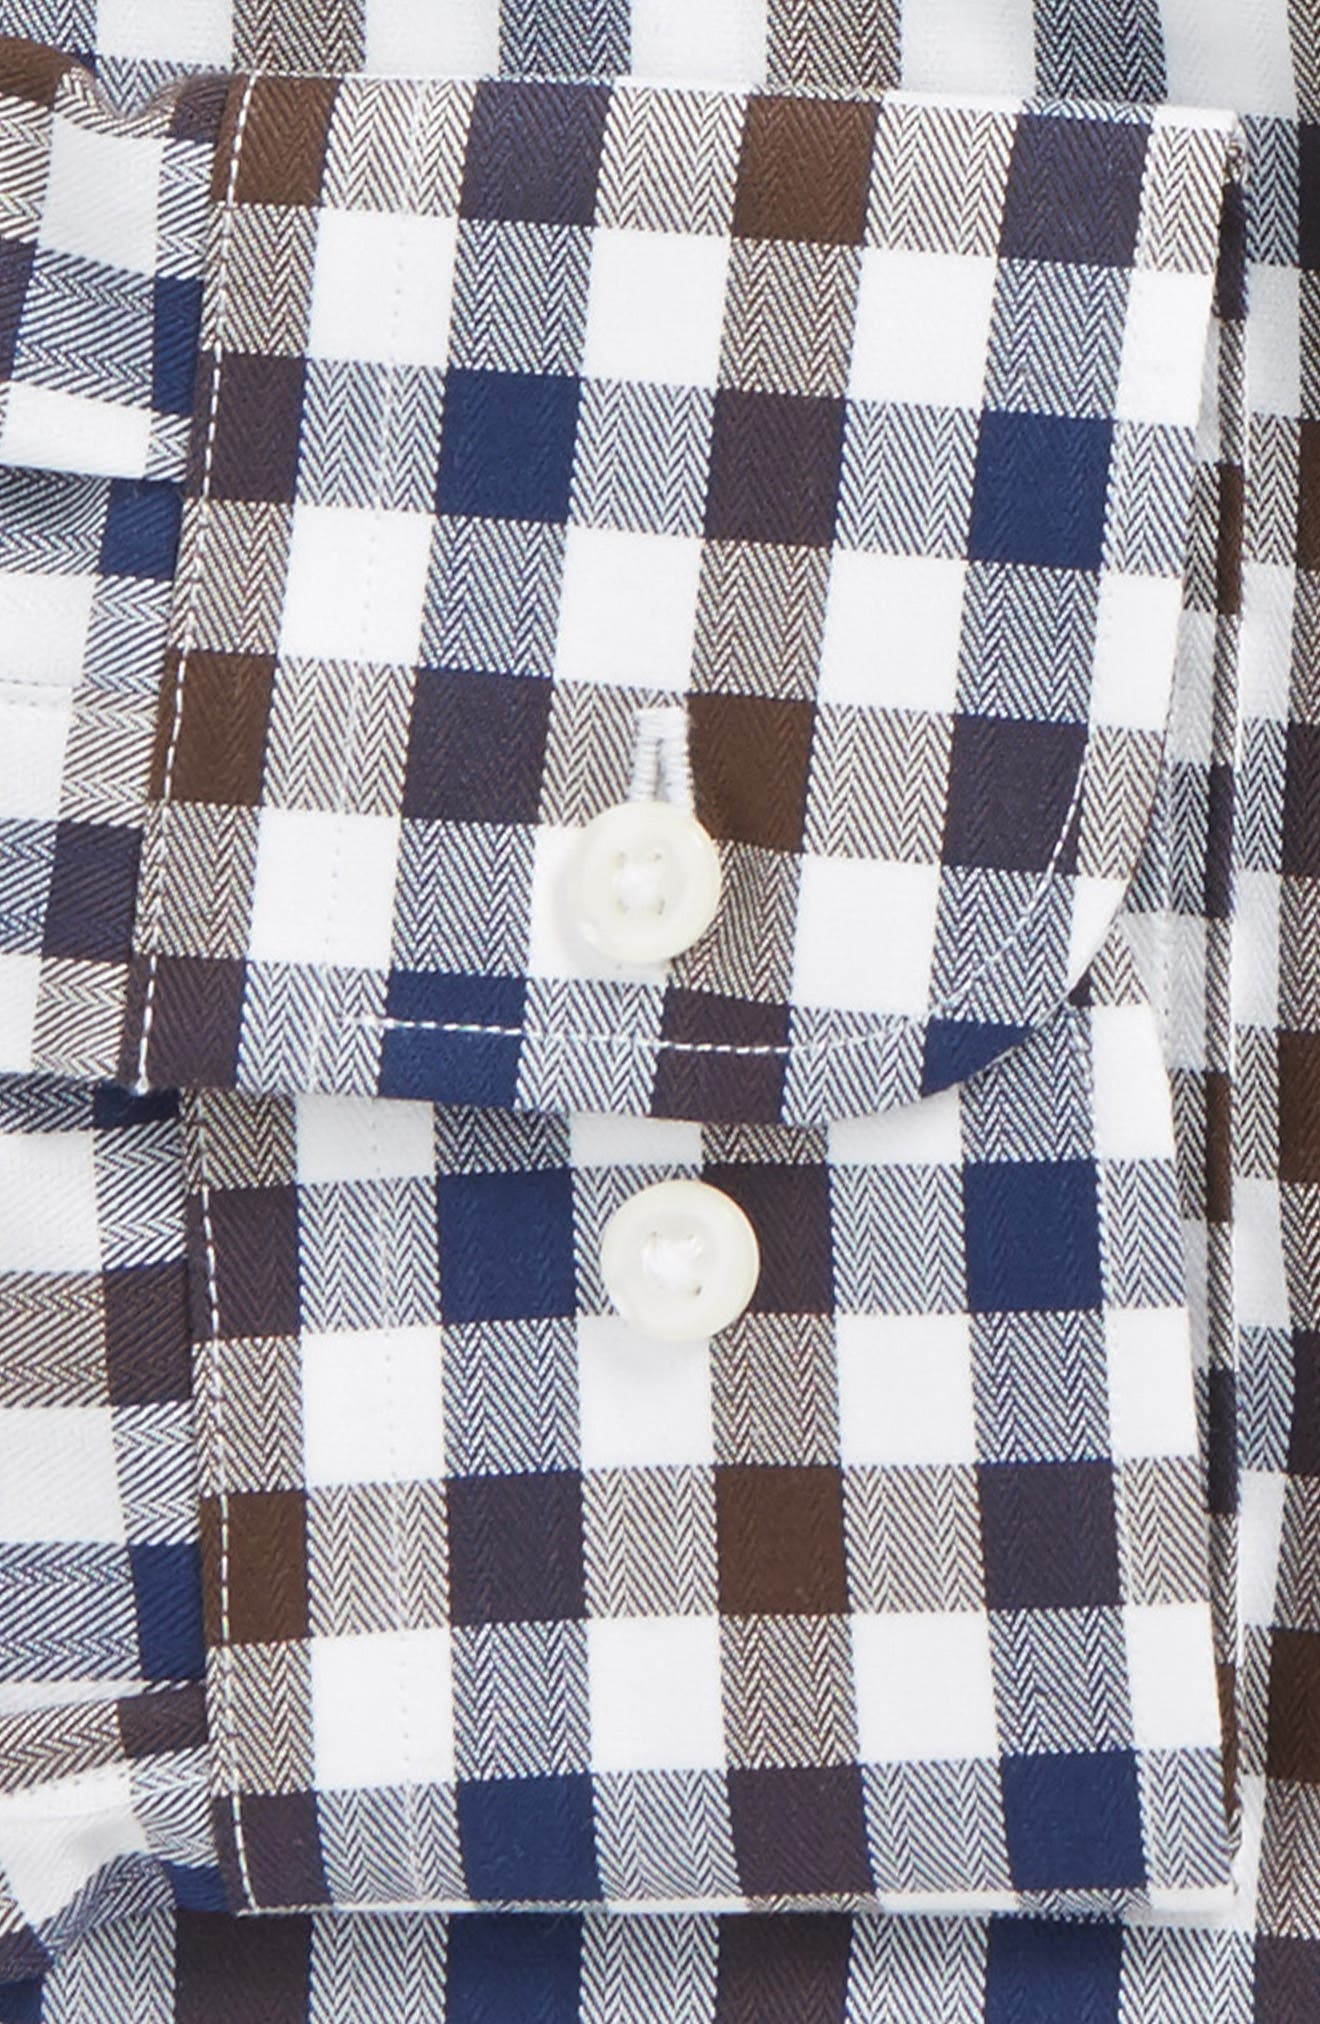 Trim Fit Check Dress Shirt,                             Alternate thumbnail 2, color,                             210